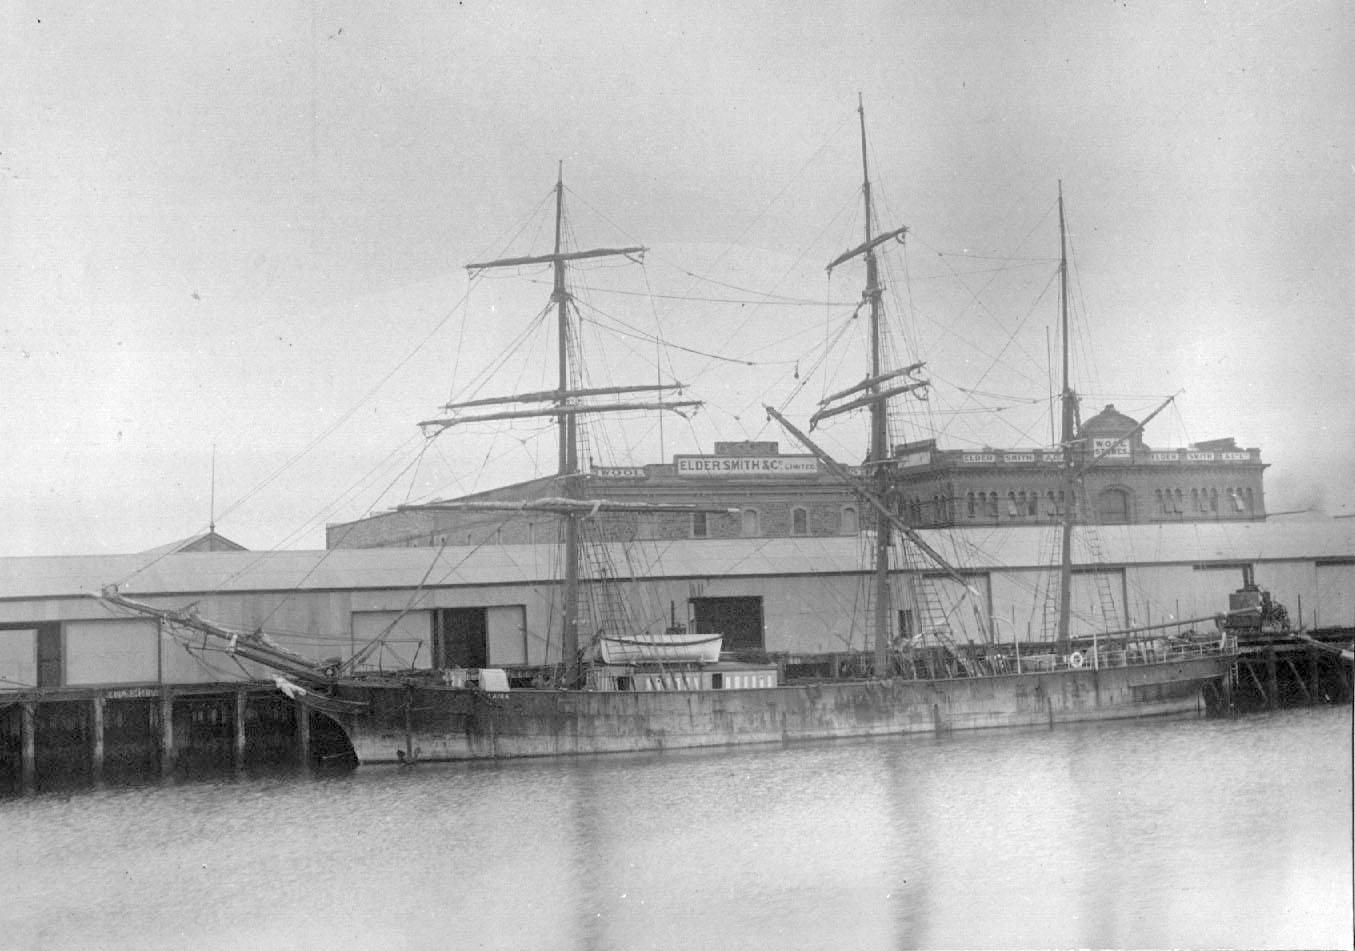 """Iron Barque, """"Laira"""", built in 1870 at Sunderland.  She was first registered in Plymouth and seems to have arrived in Australasia when her registration was transferred to Auckland in 1882.  On 2 April 1898 when she was owned in Dunedin, she was in a colli"""